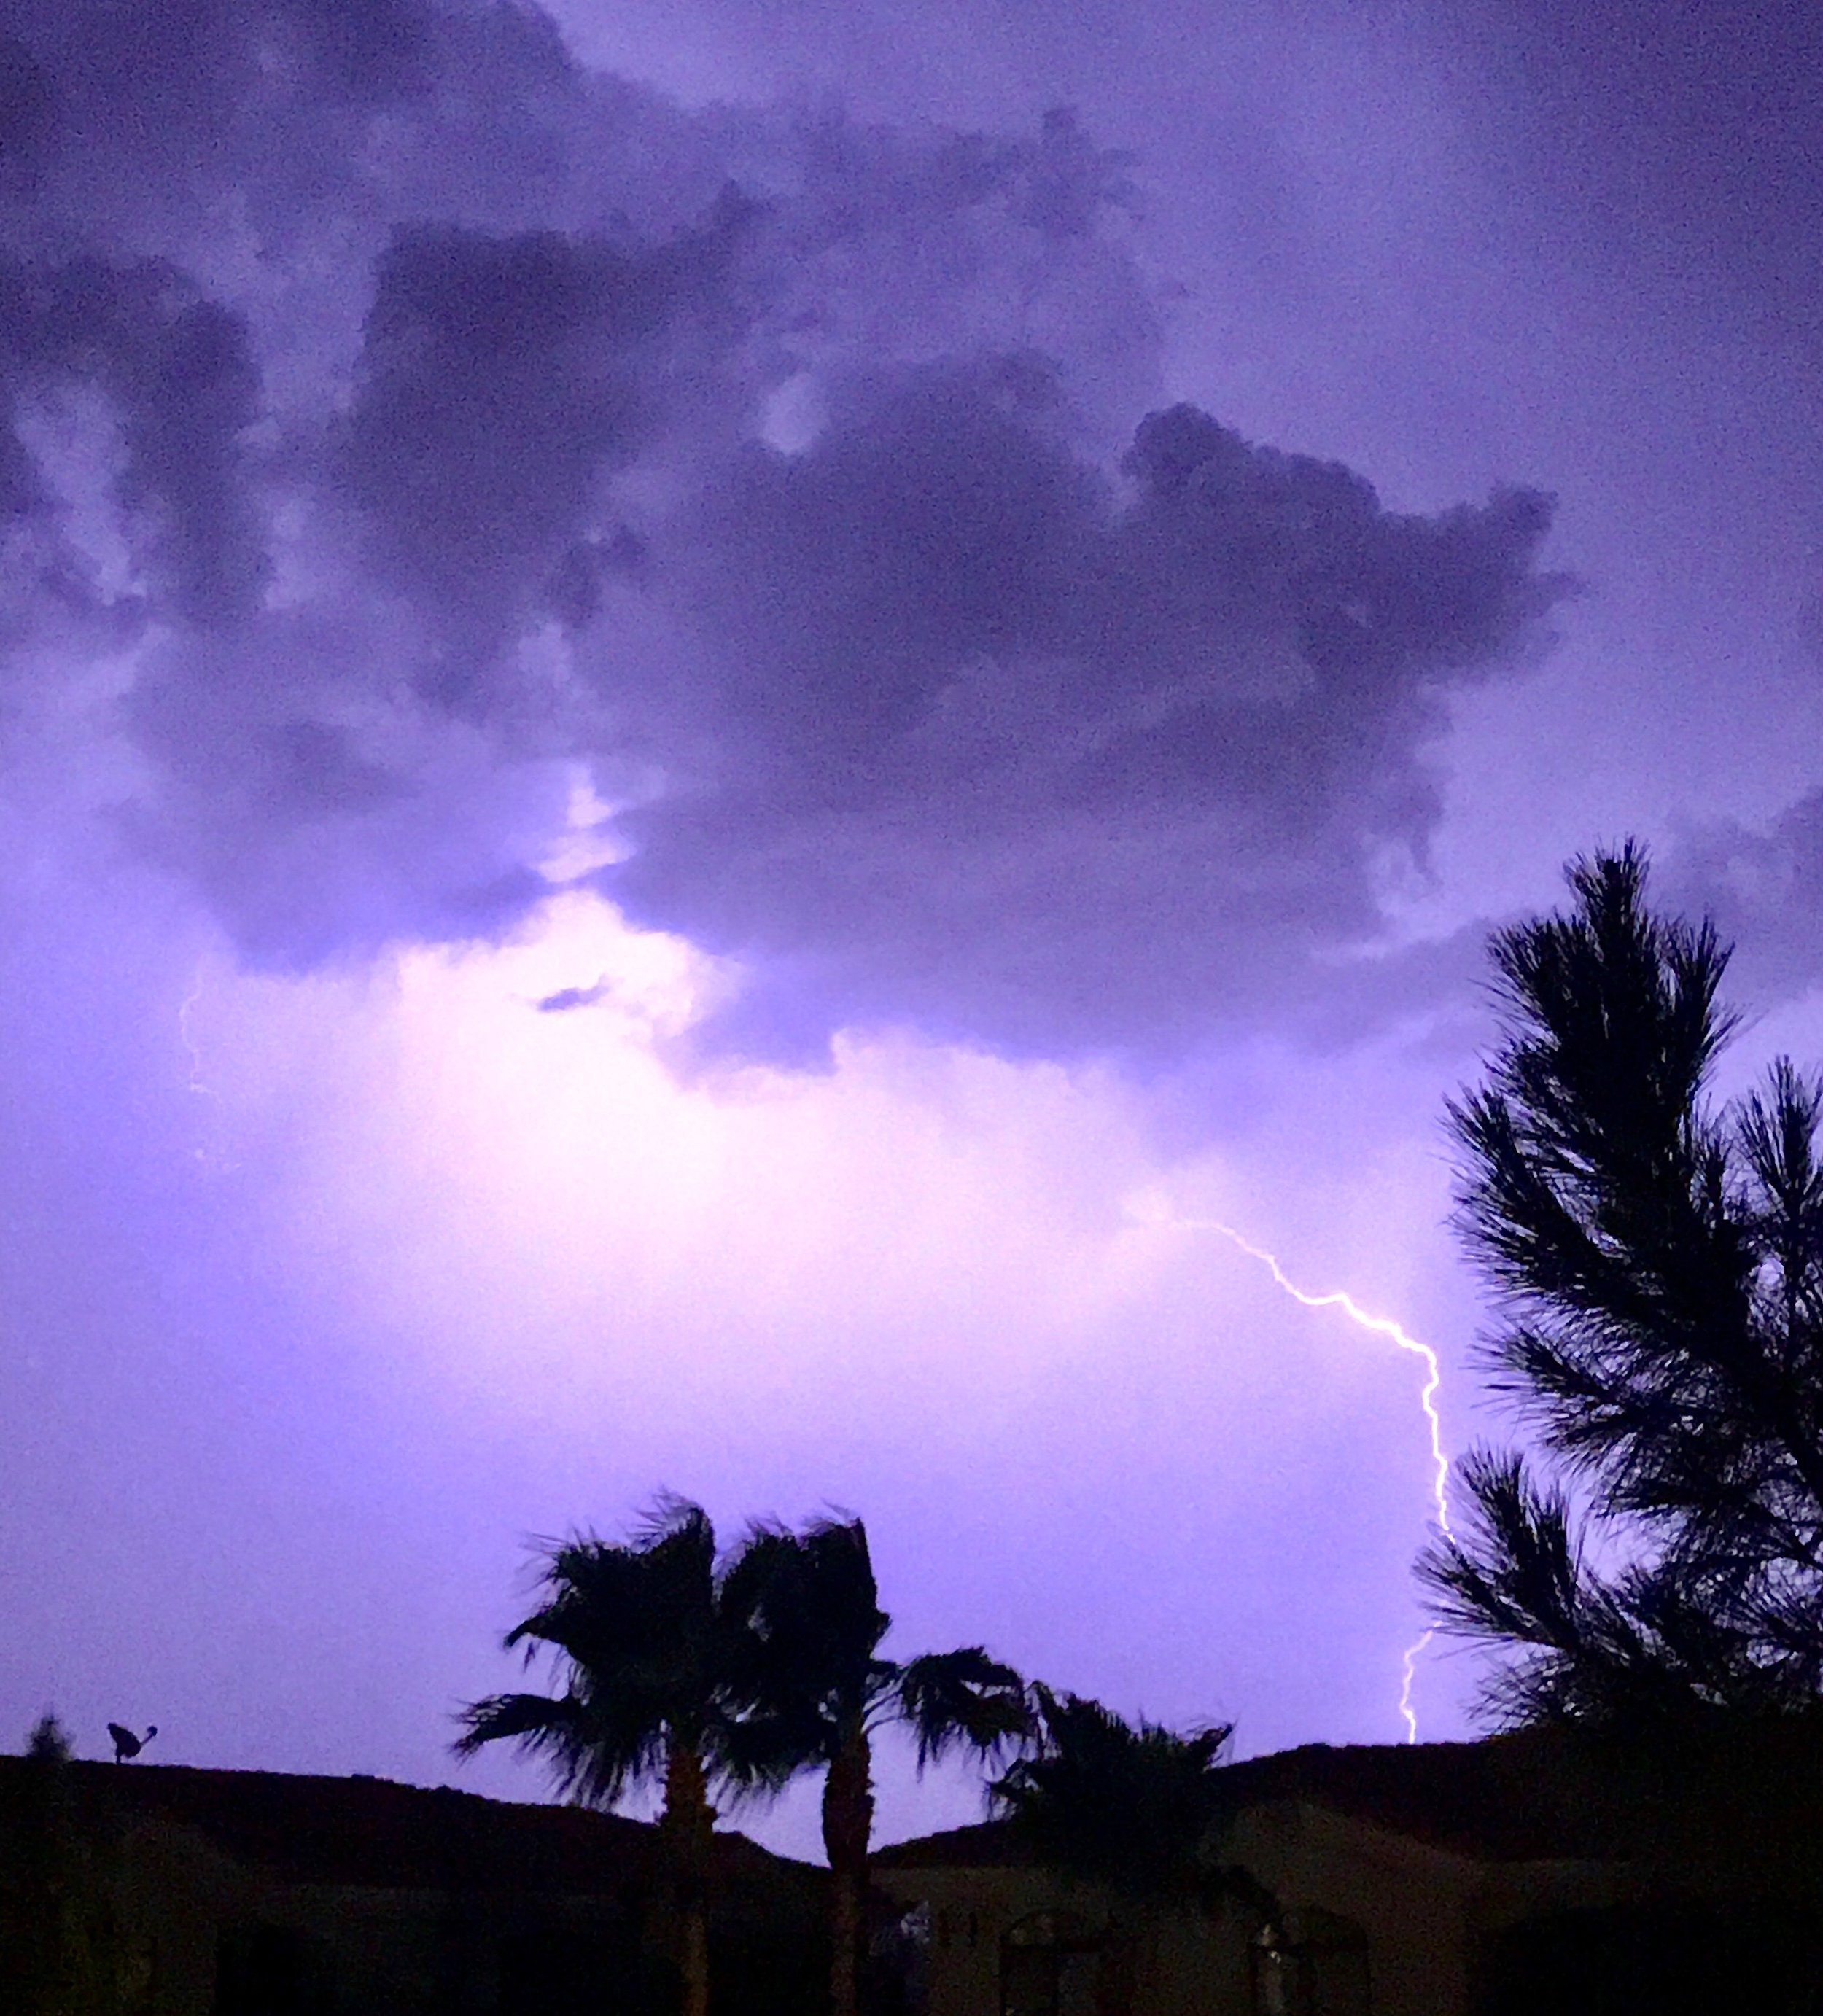 Lightning I caught during an evening monsoon shower